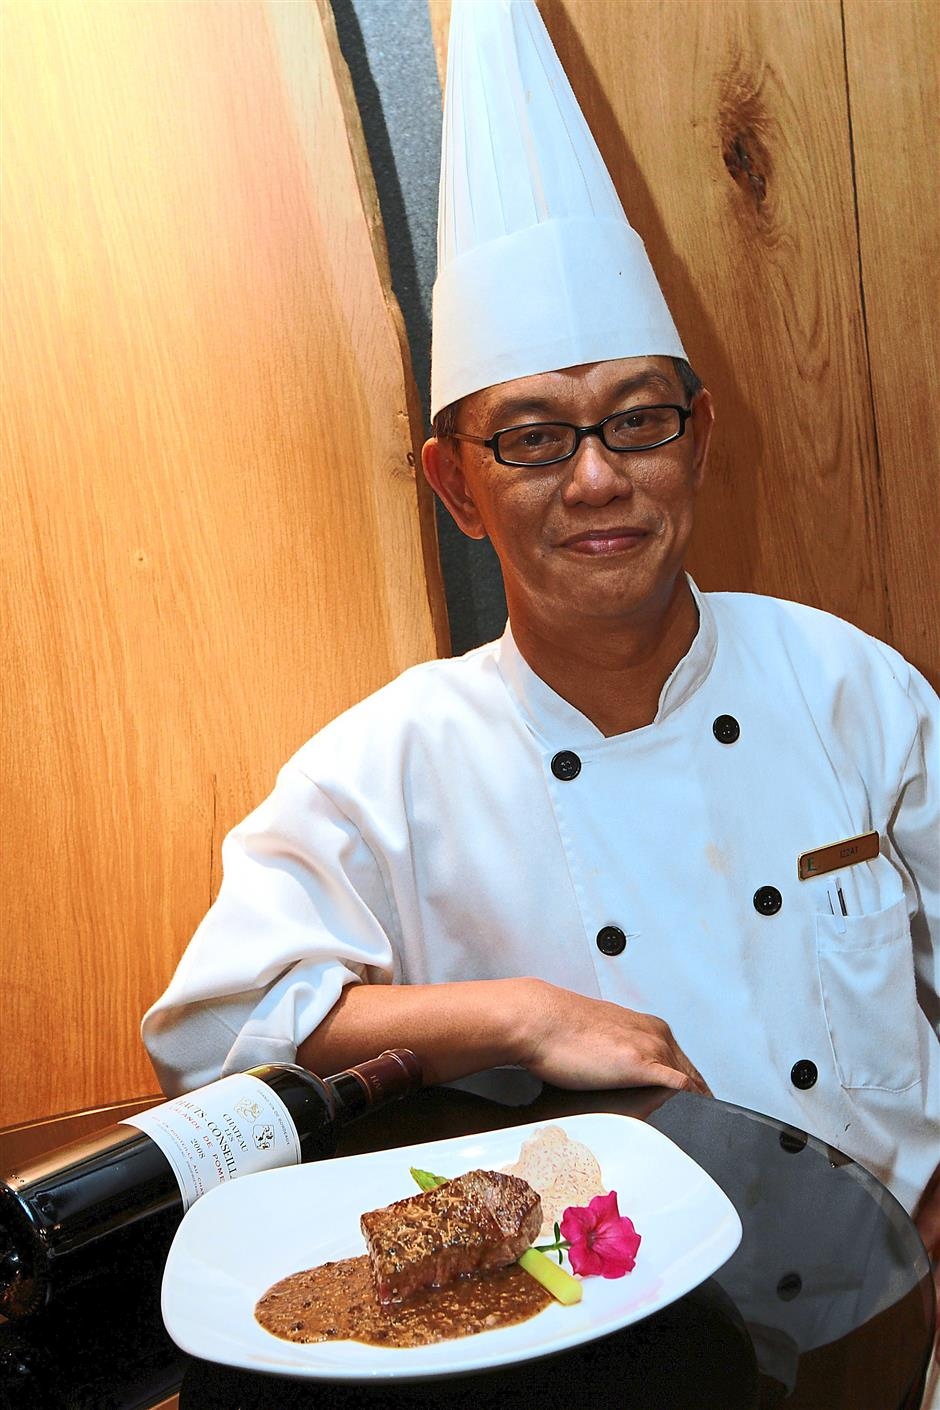 Creative: Muhammad Izzat has more than 30 years experience in preparing Japanese cuisine.